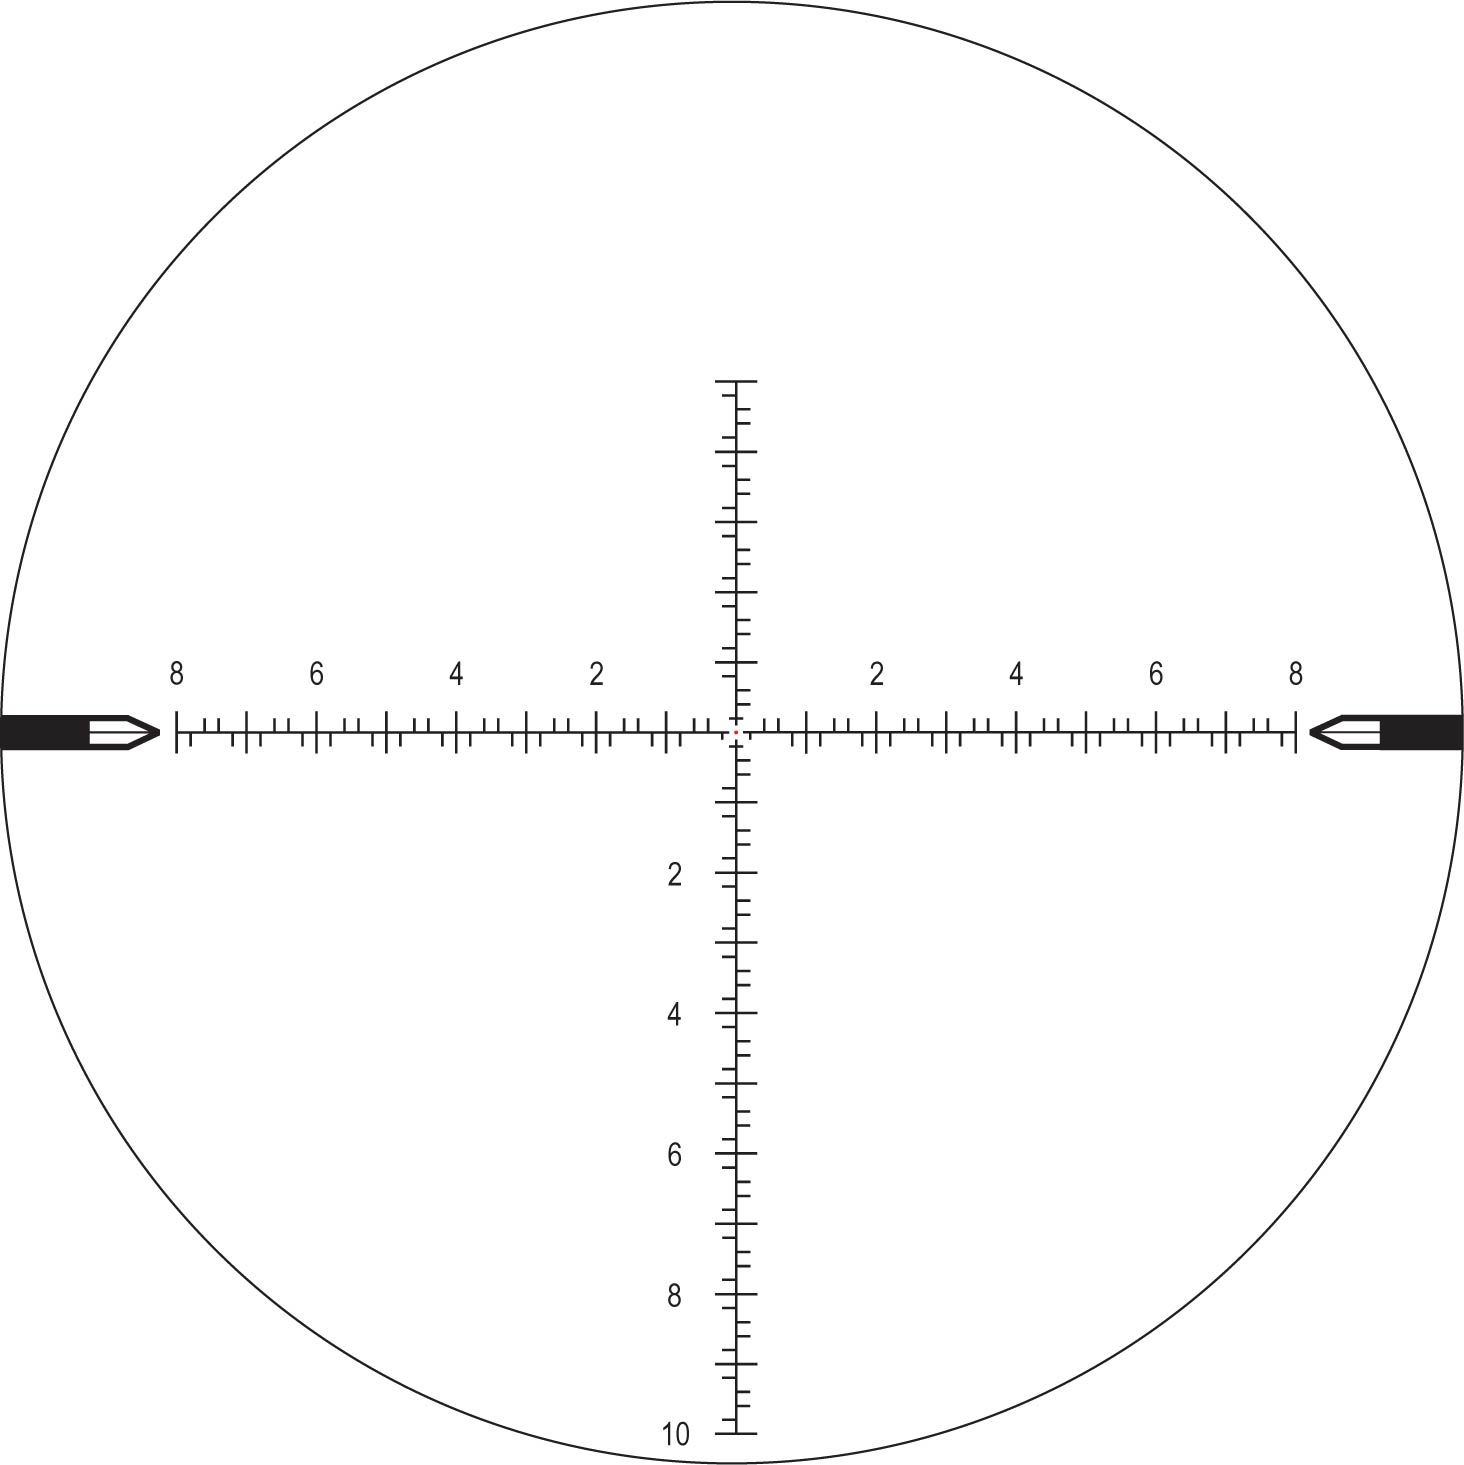 Reticle_Images - NF_MIL-CF2_Reticle_25-20